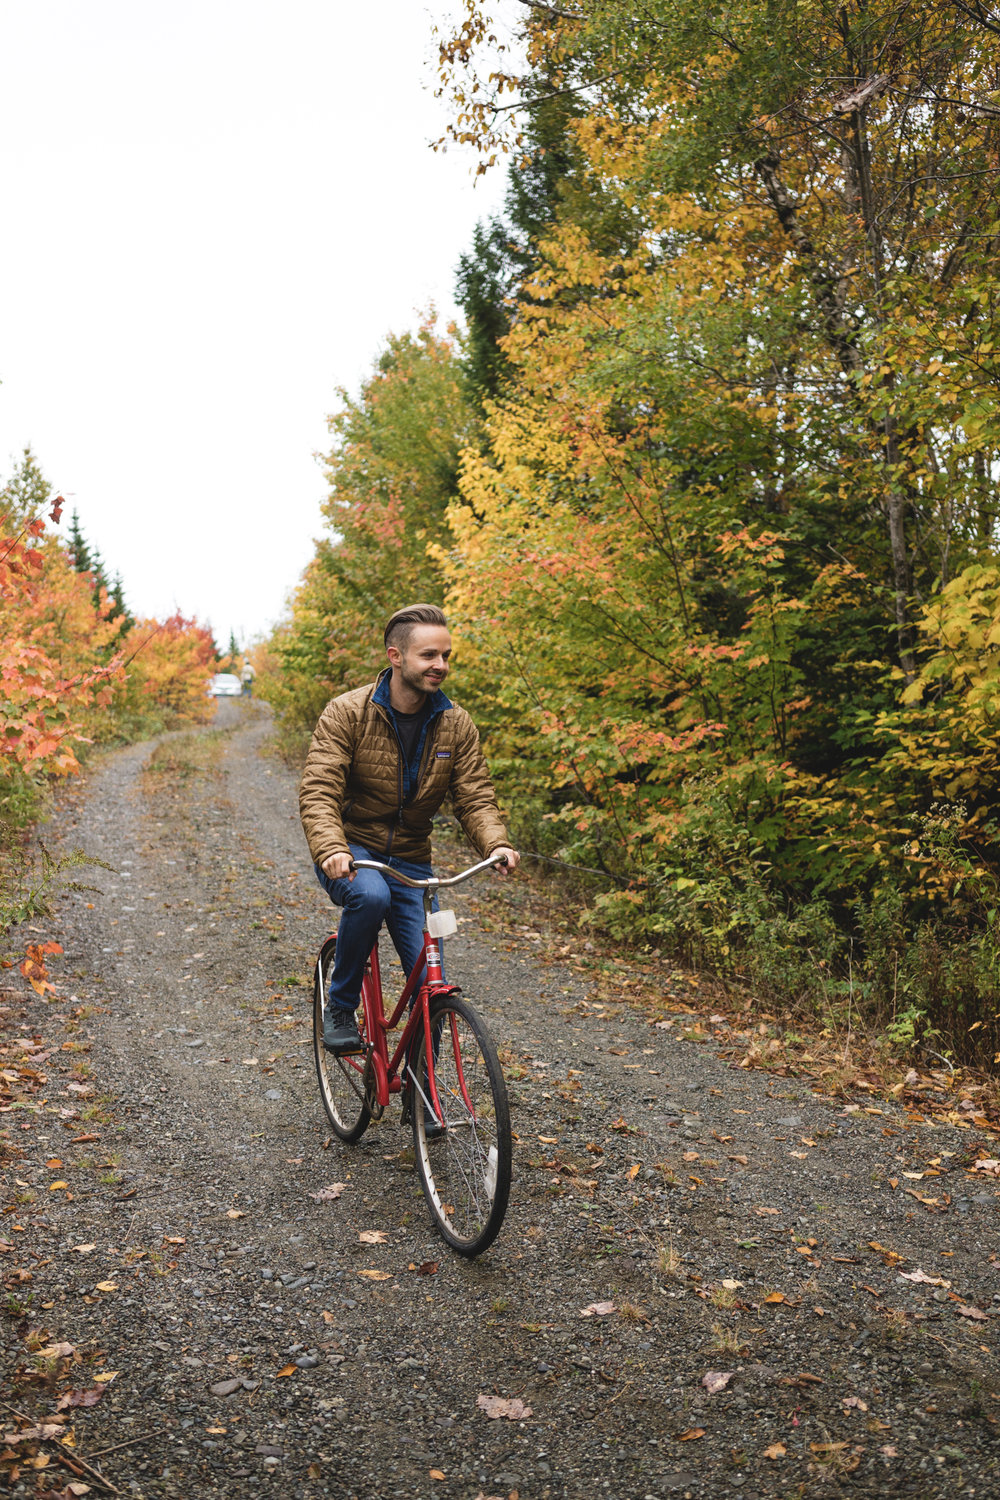 Things to do in Maine in the fall - Road Trip in #Maine in the Fall What to see in Maine and where to stay